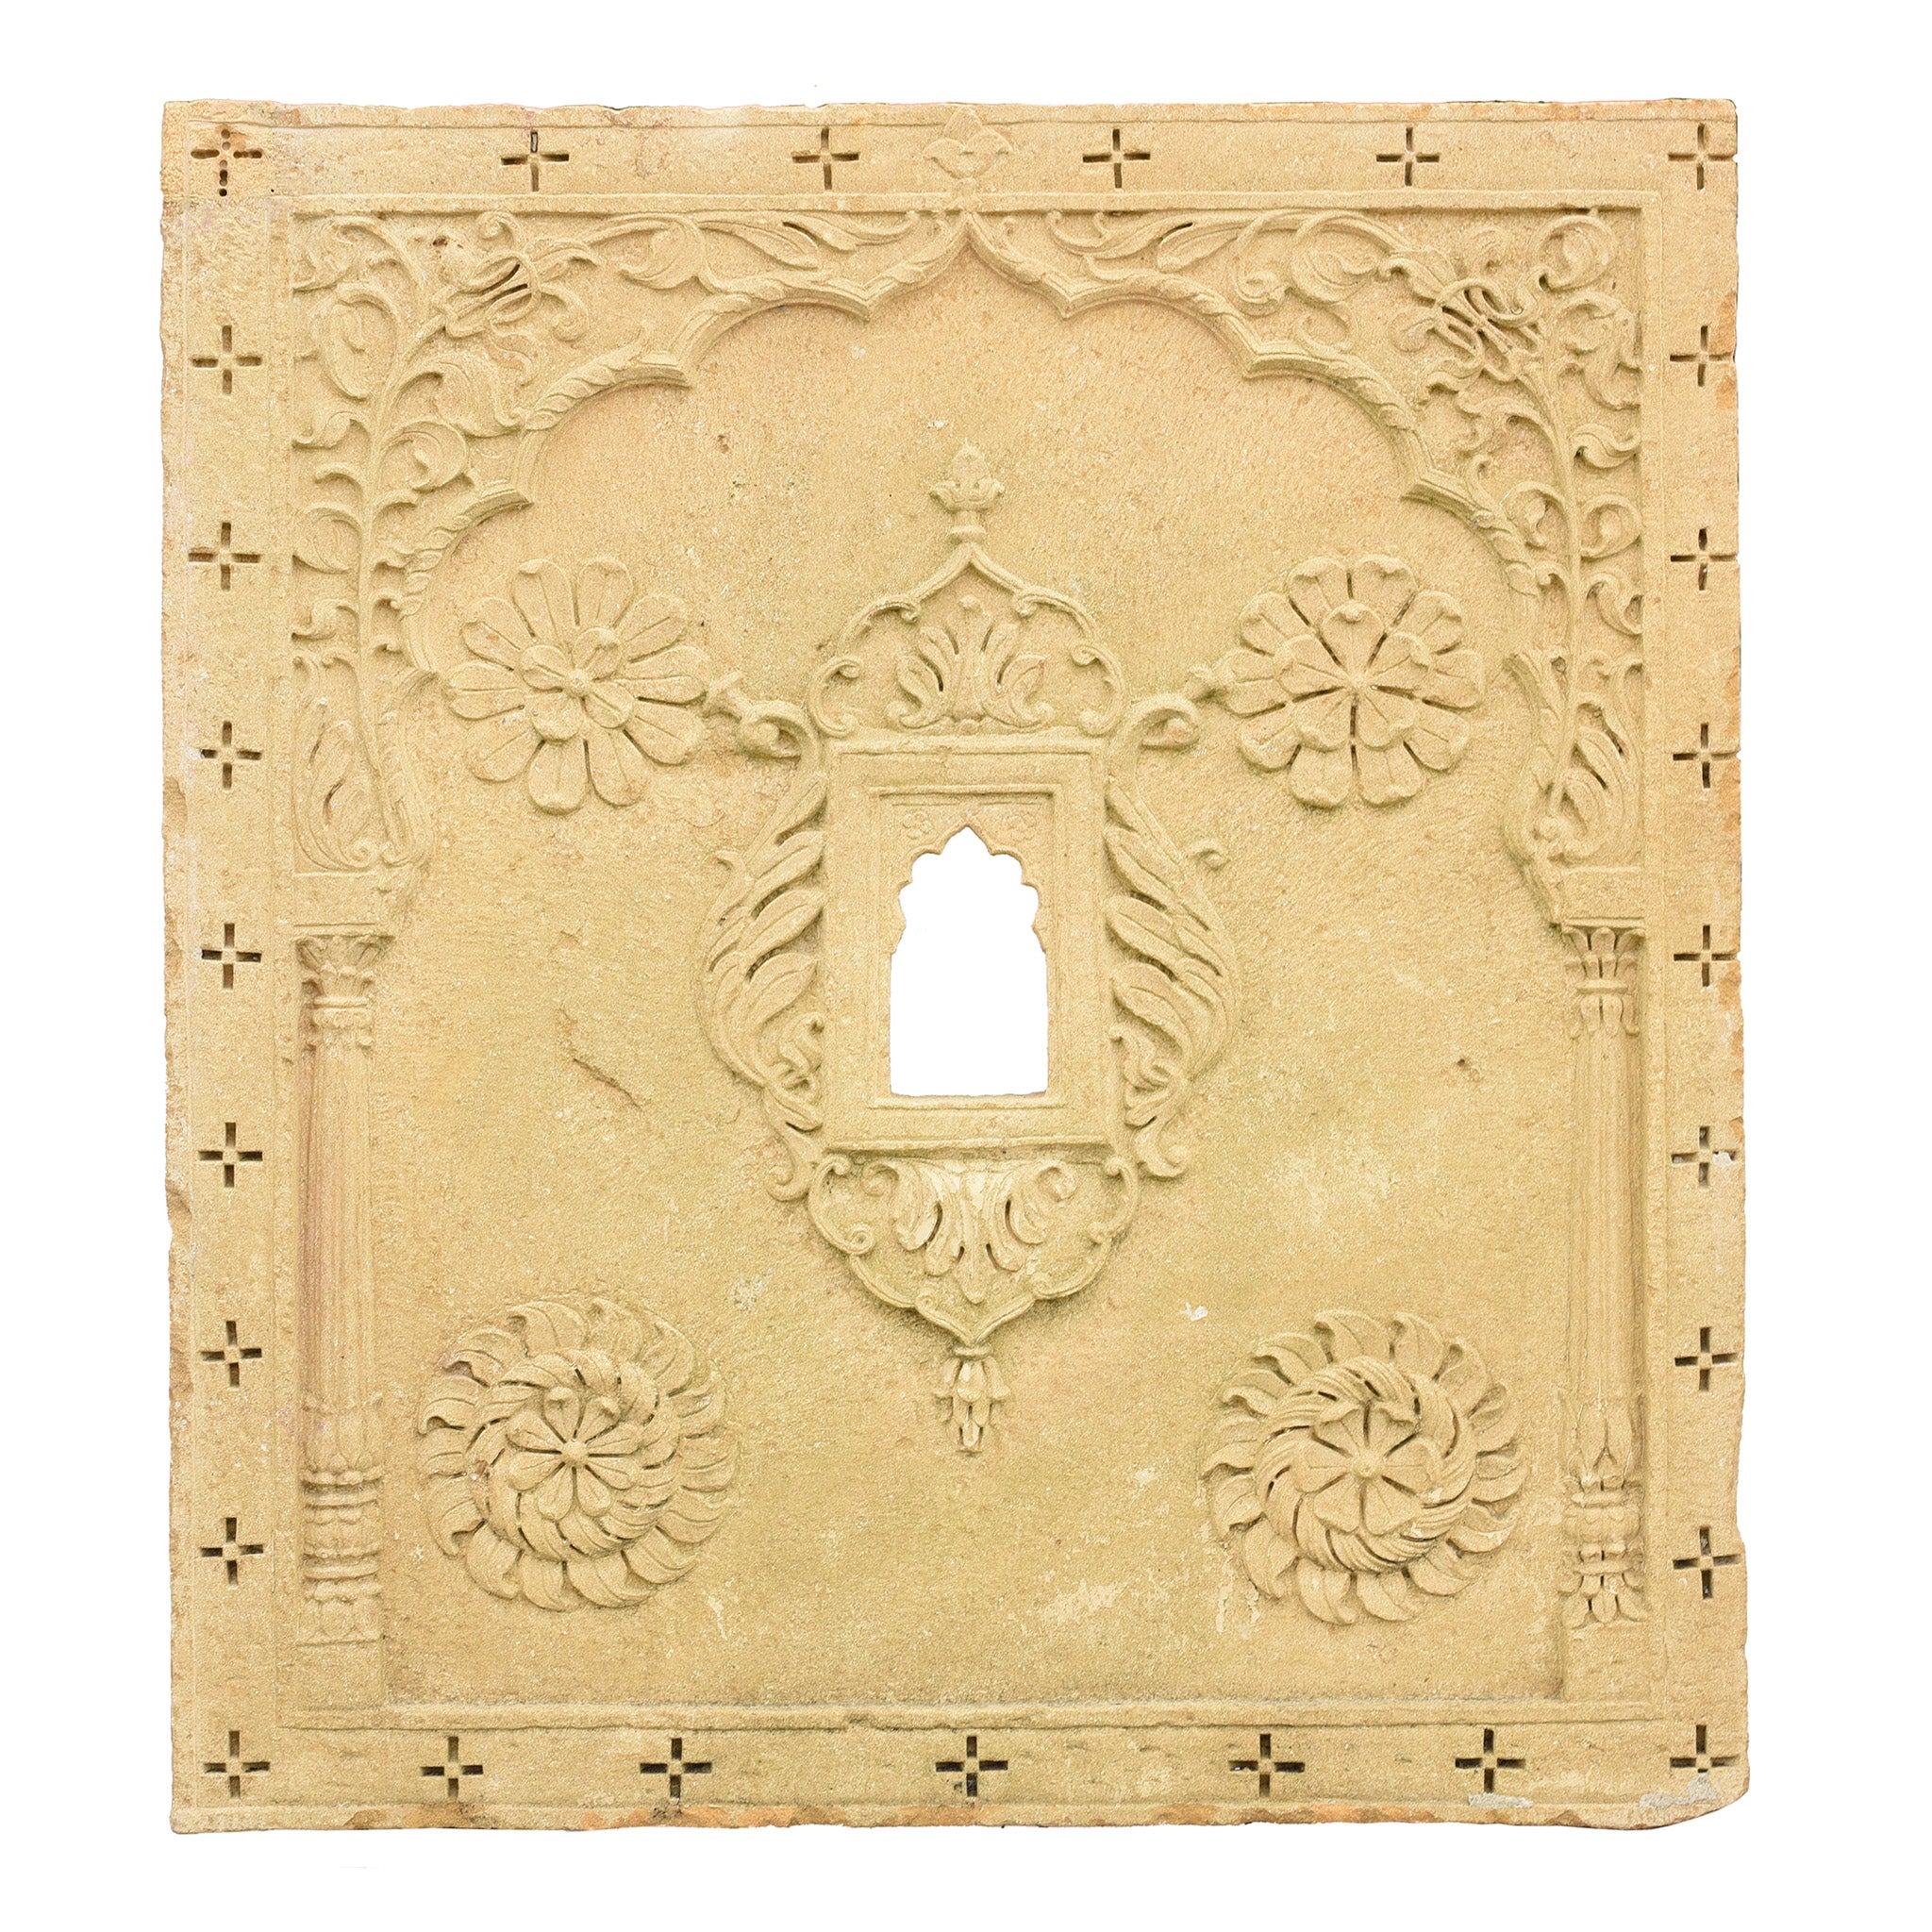 Carved Stone Panel From Rajasthan - 19thC